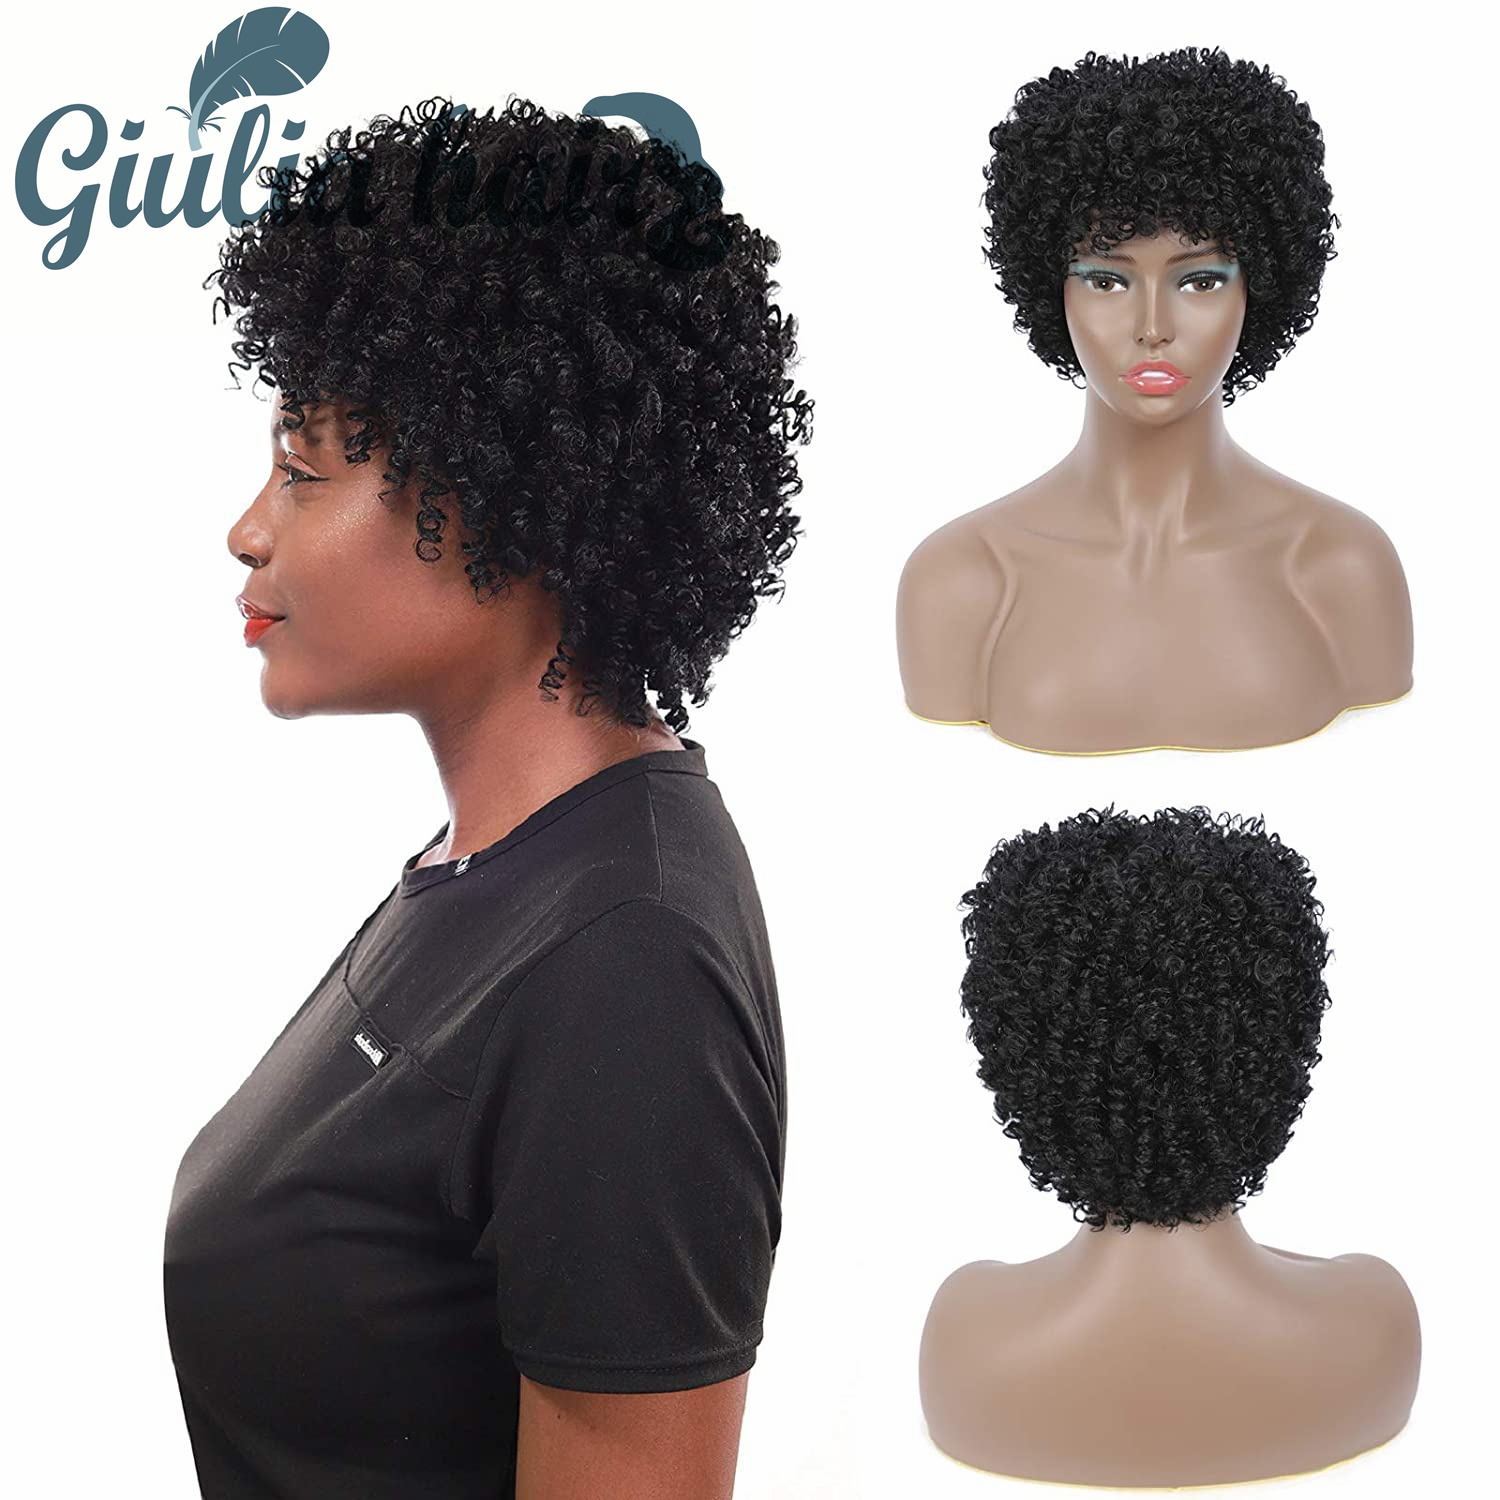 Layered Short Wigs Nature Dream Kinky Curly 98% Human Hair Wigs Cheap Human Hair Wig For Party Dance Cosplay